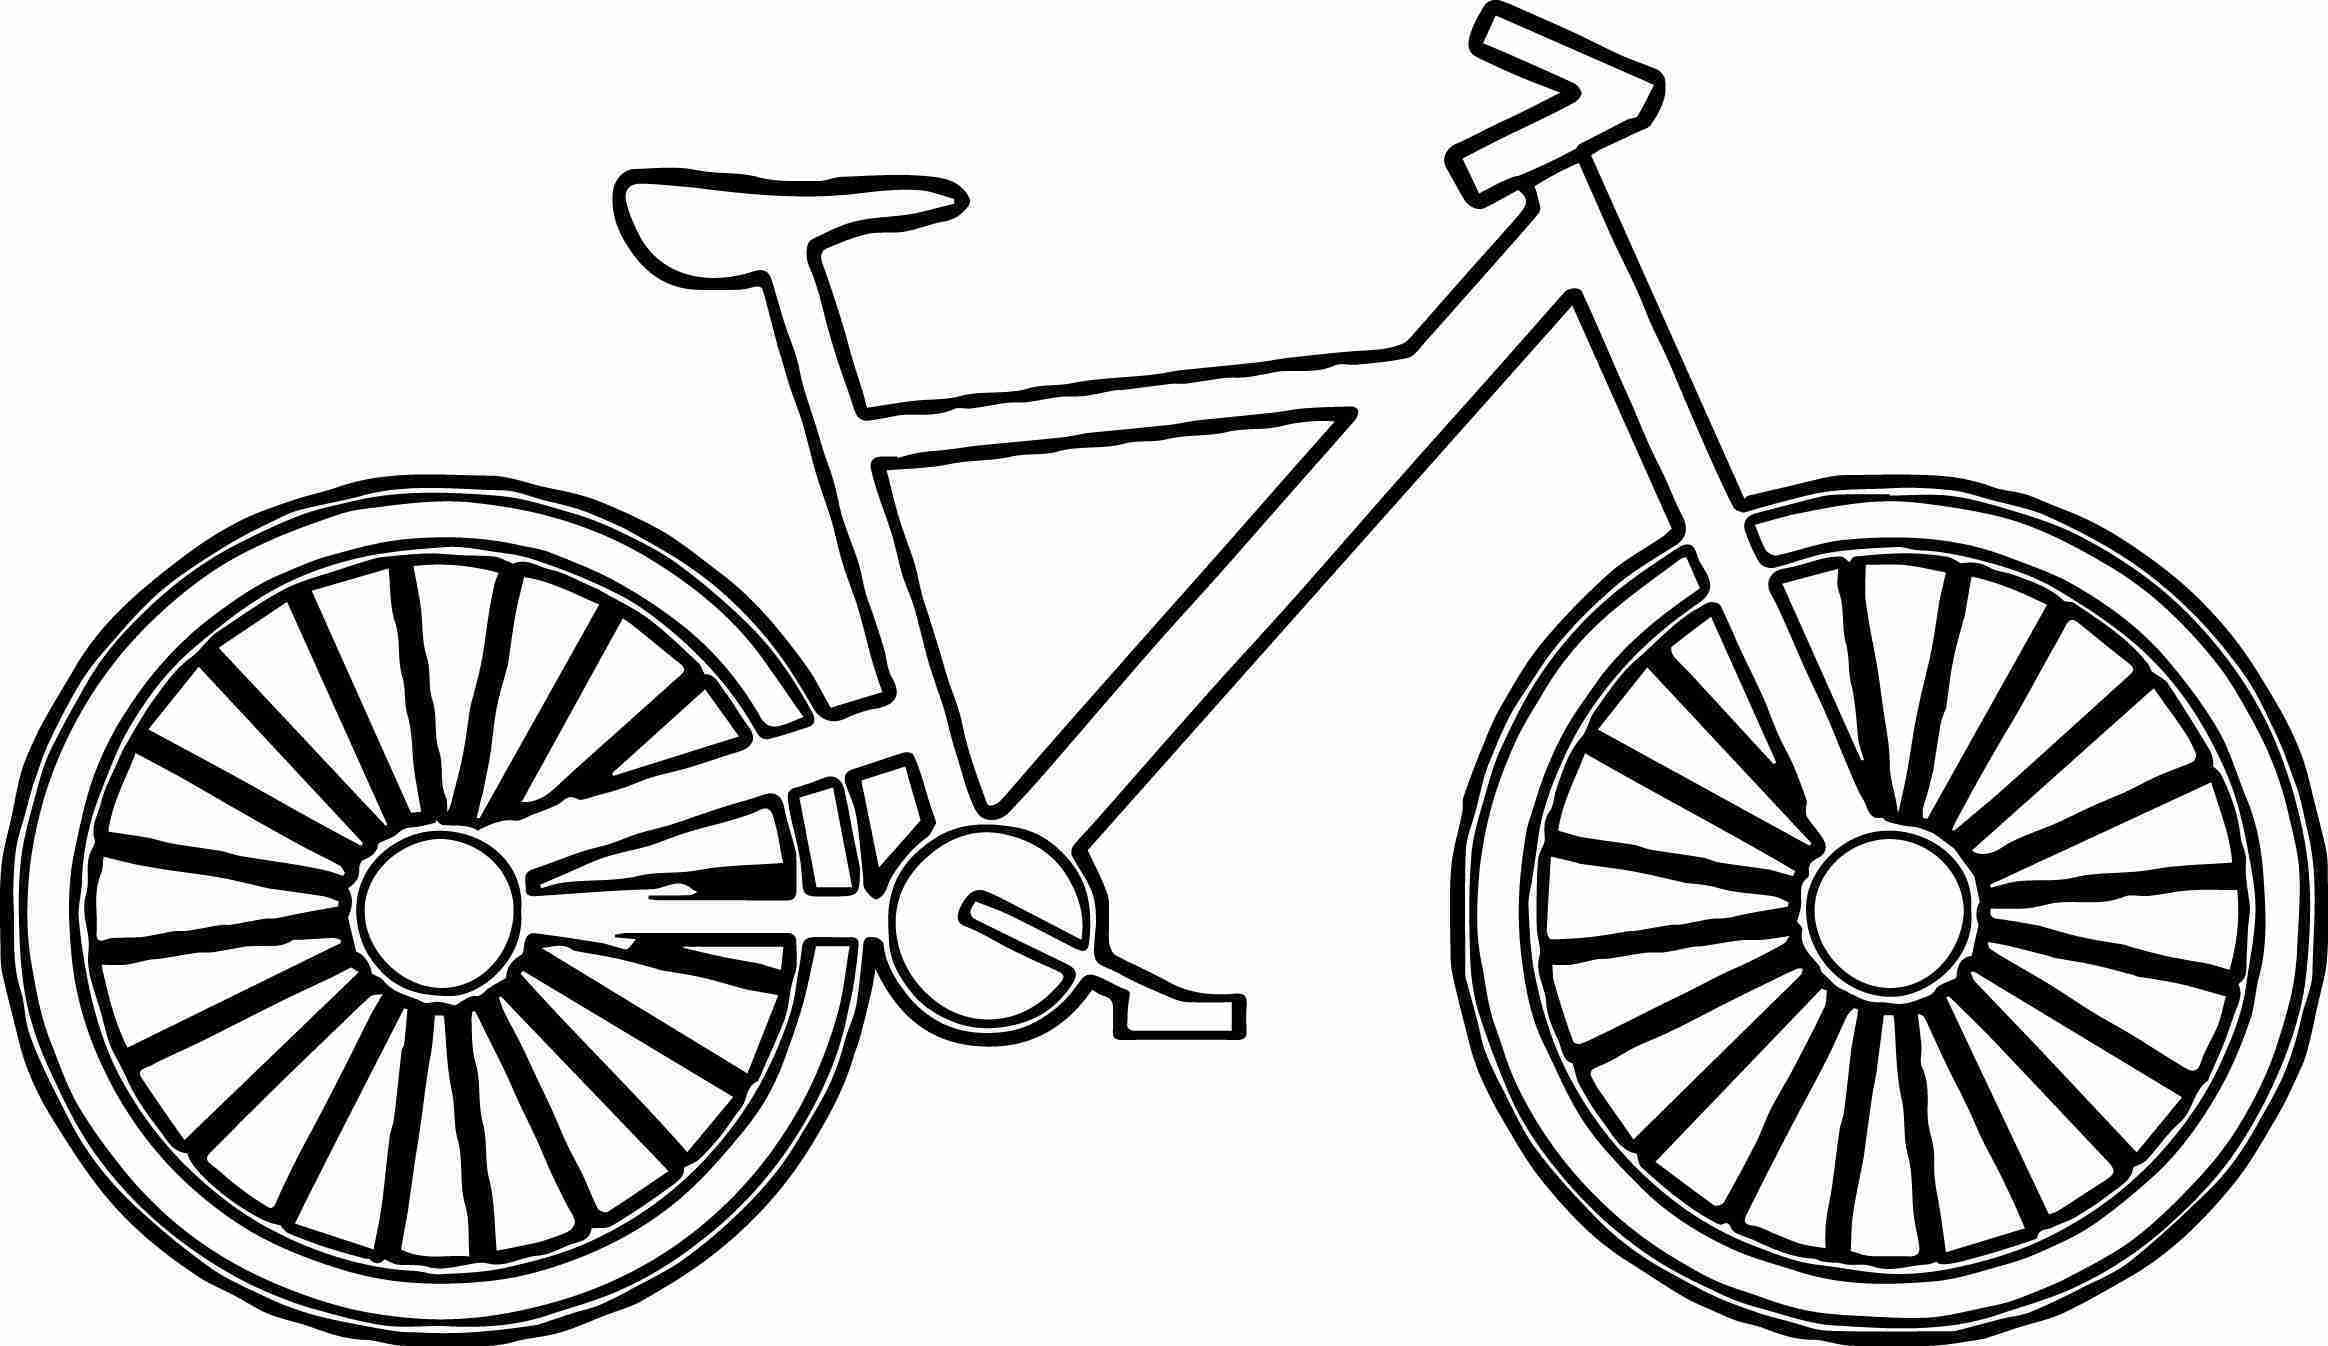 Bmx Bike Coloring Page At Getcolorings